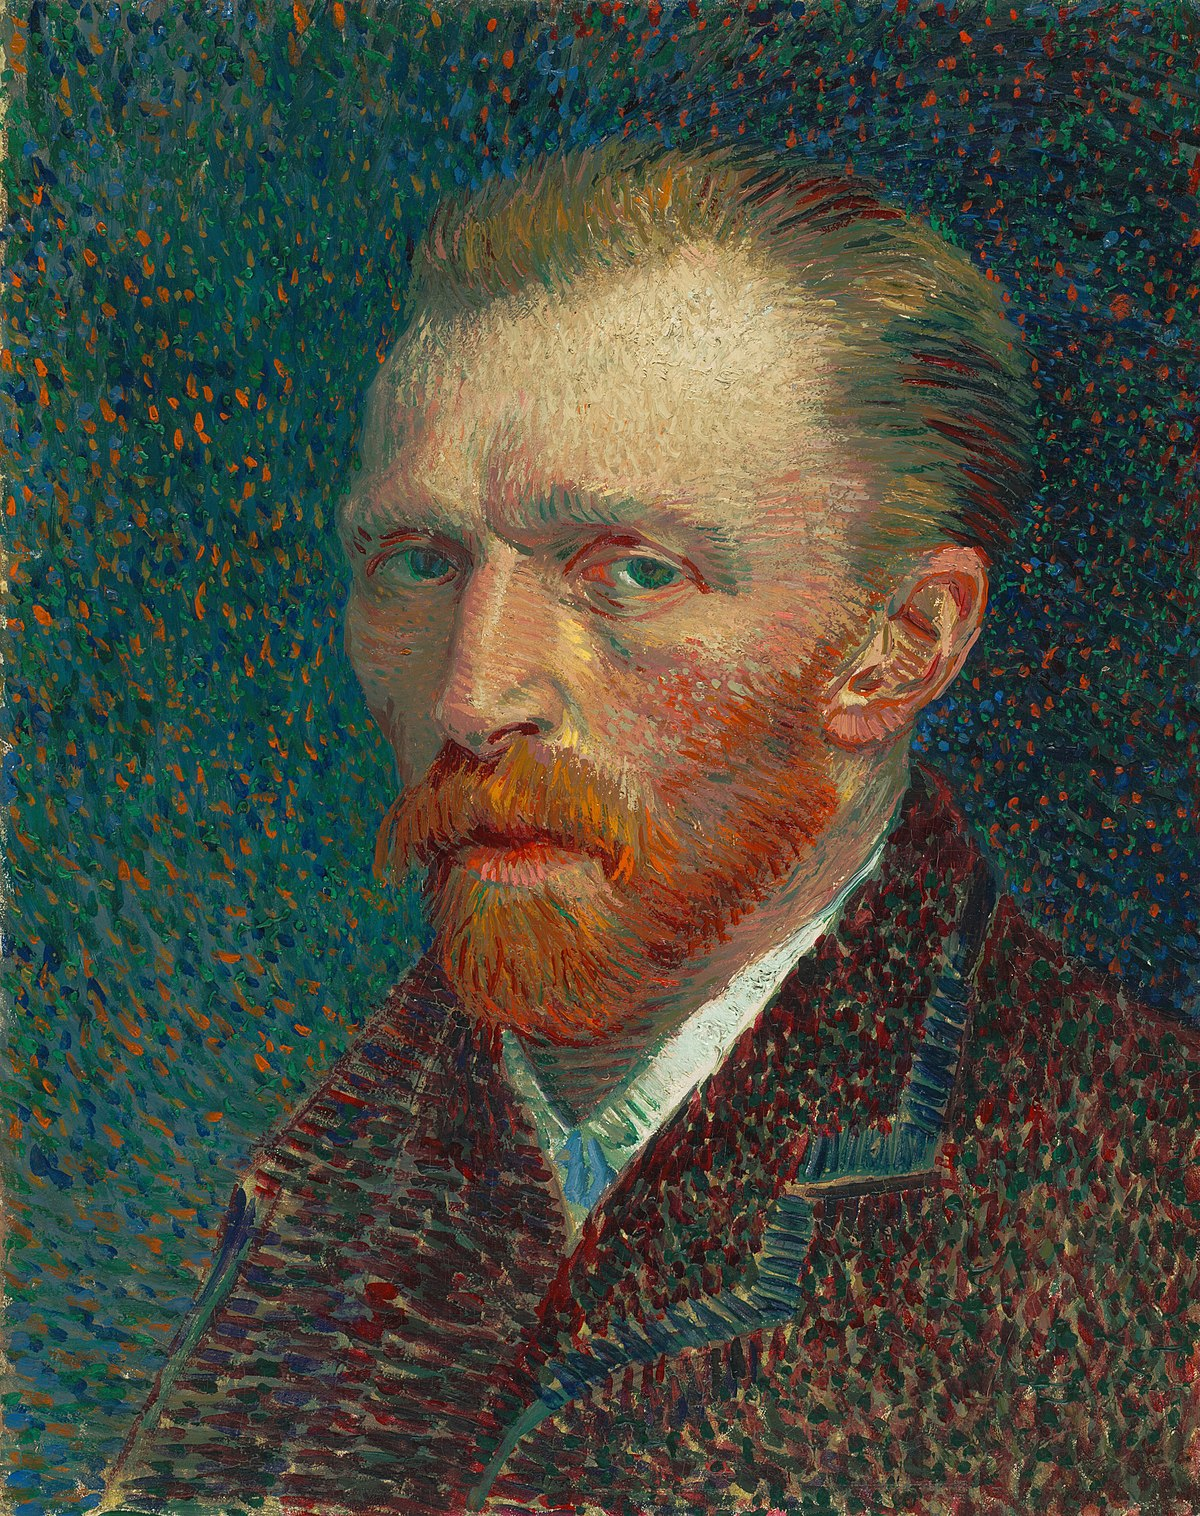 An intense man with close cropped hair and red beard gazes to the left.